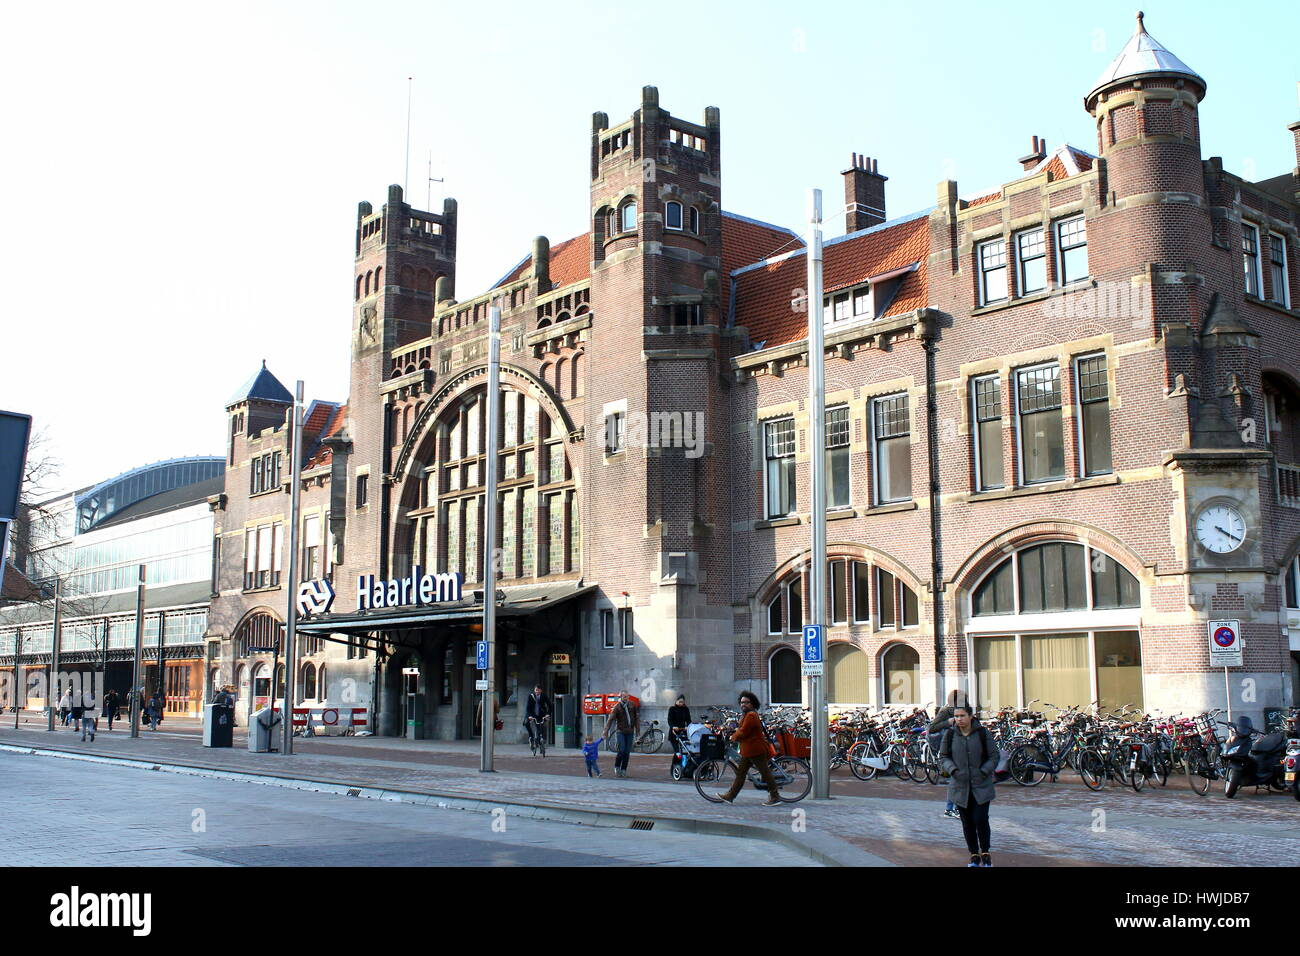 haarlem railway station holland photos haarlem railway station holland images alamy. Black Bedroom Furniture Sets. Home Design Ideas